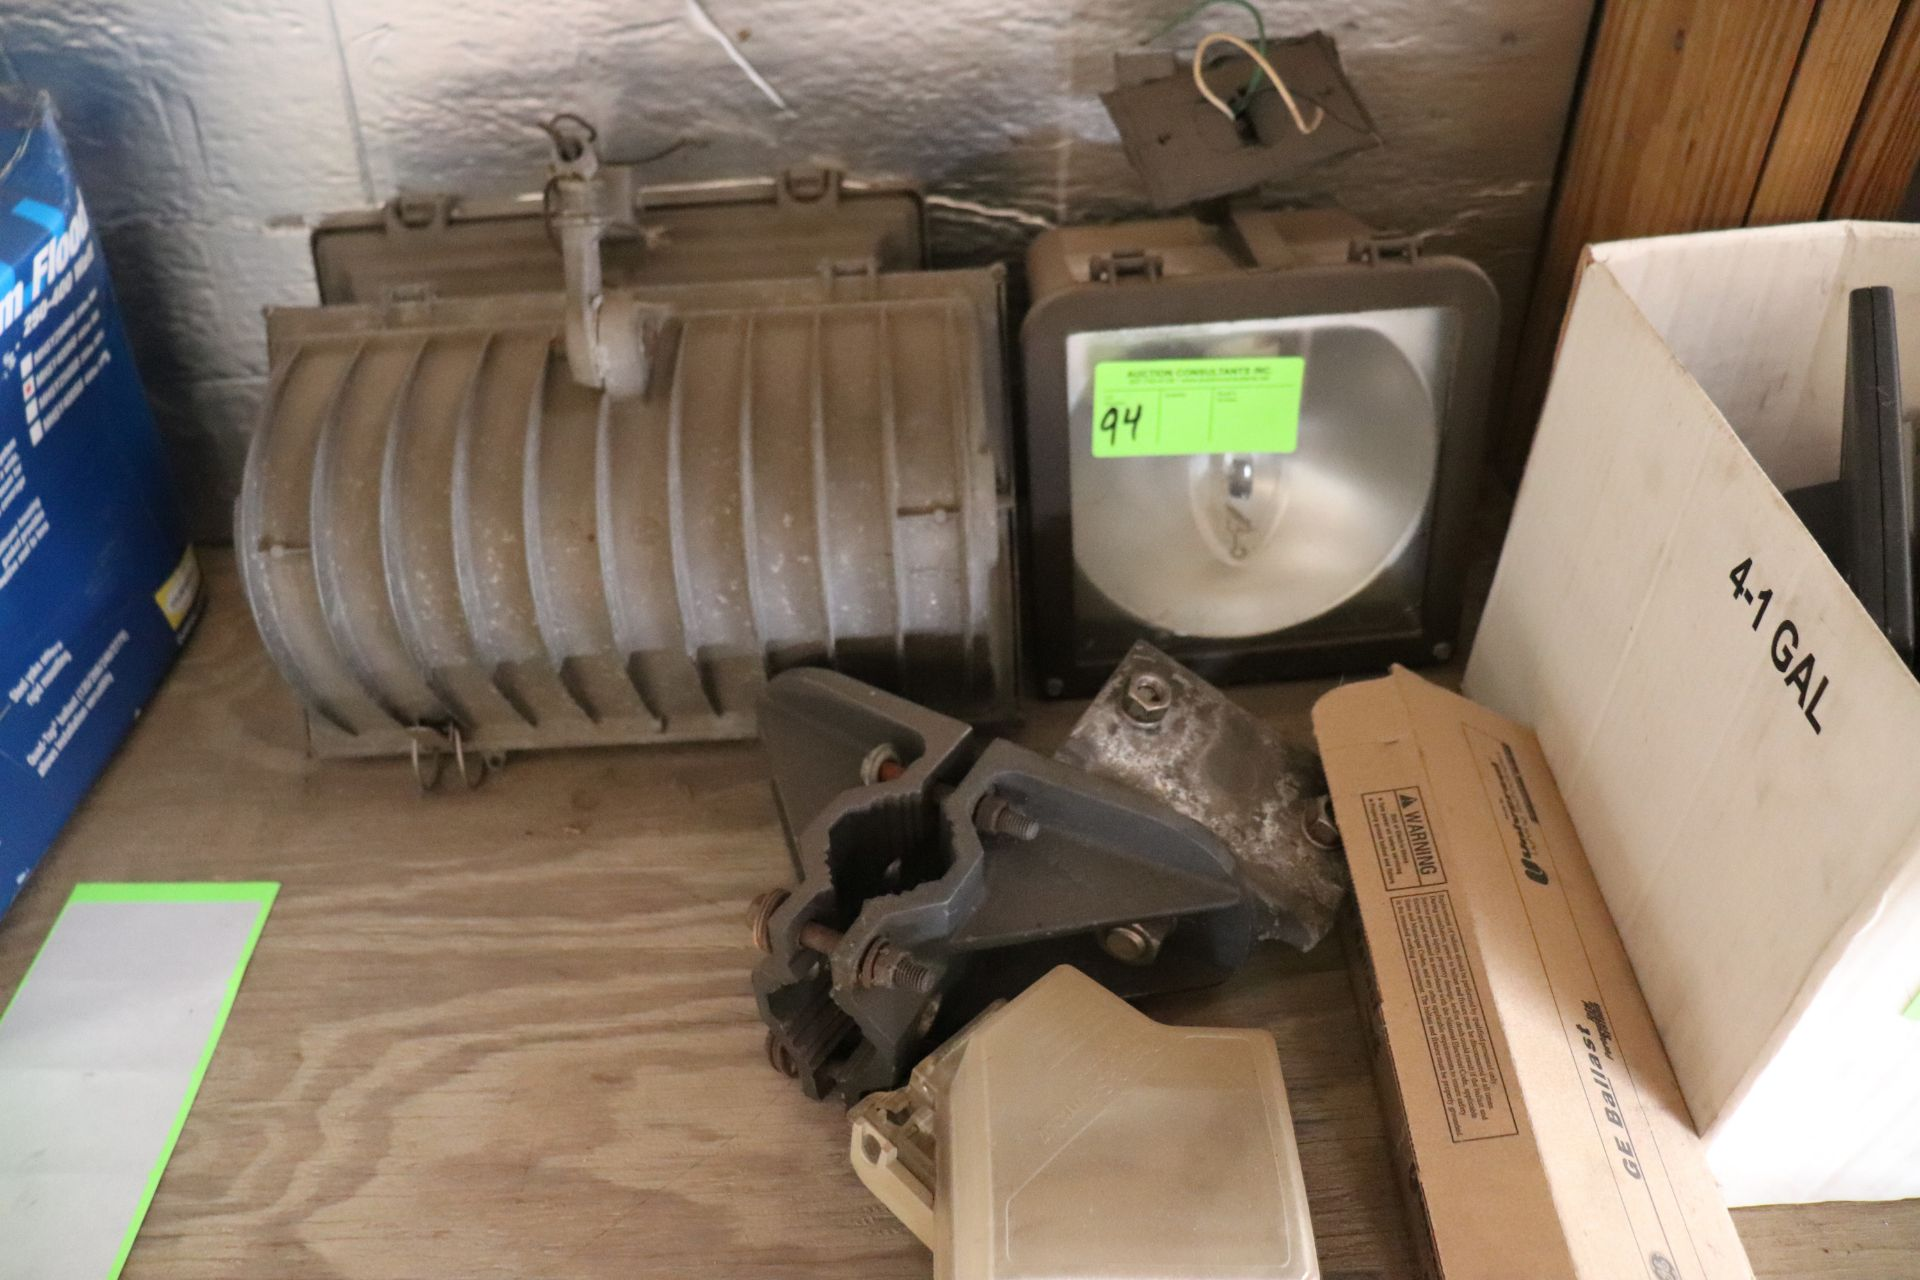 Three overhead light fixtures with mounting bracket and GE ballast